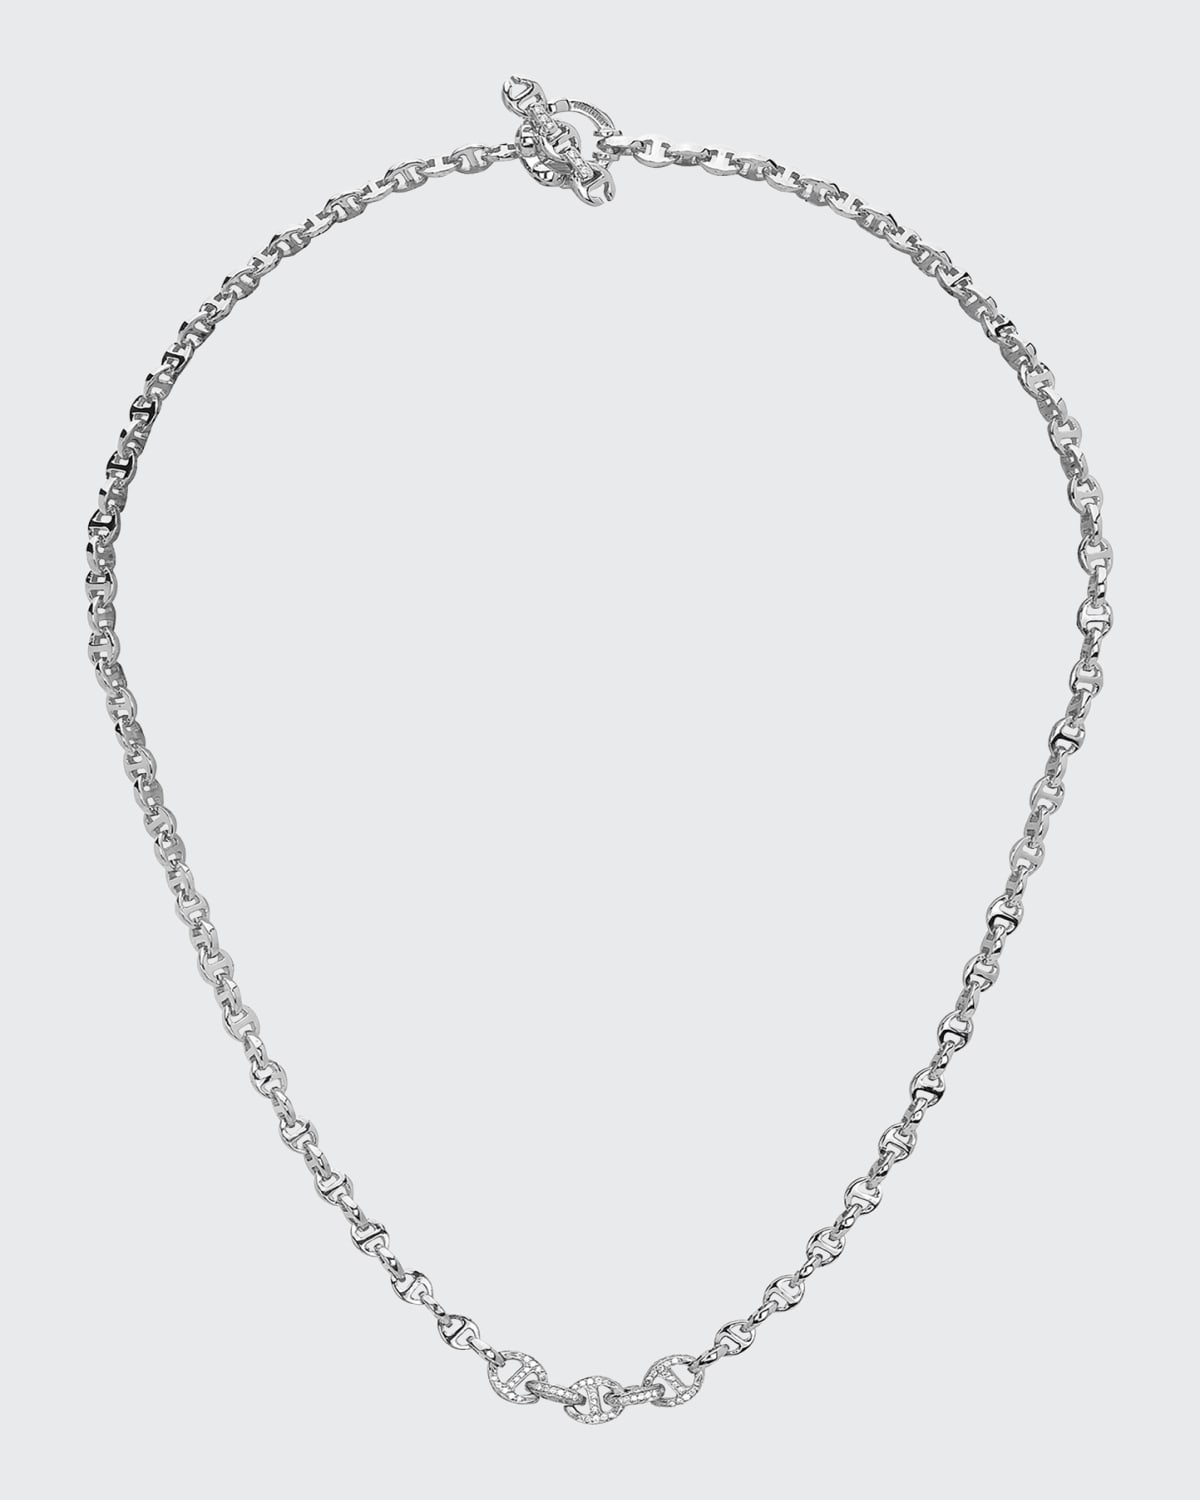 18k White Gold 3mm Mini Open-Link Necklace with 5-Link Micro Pave